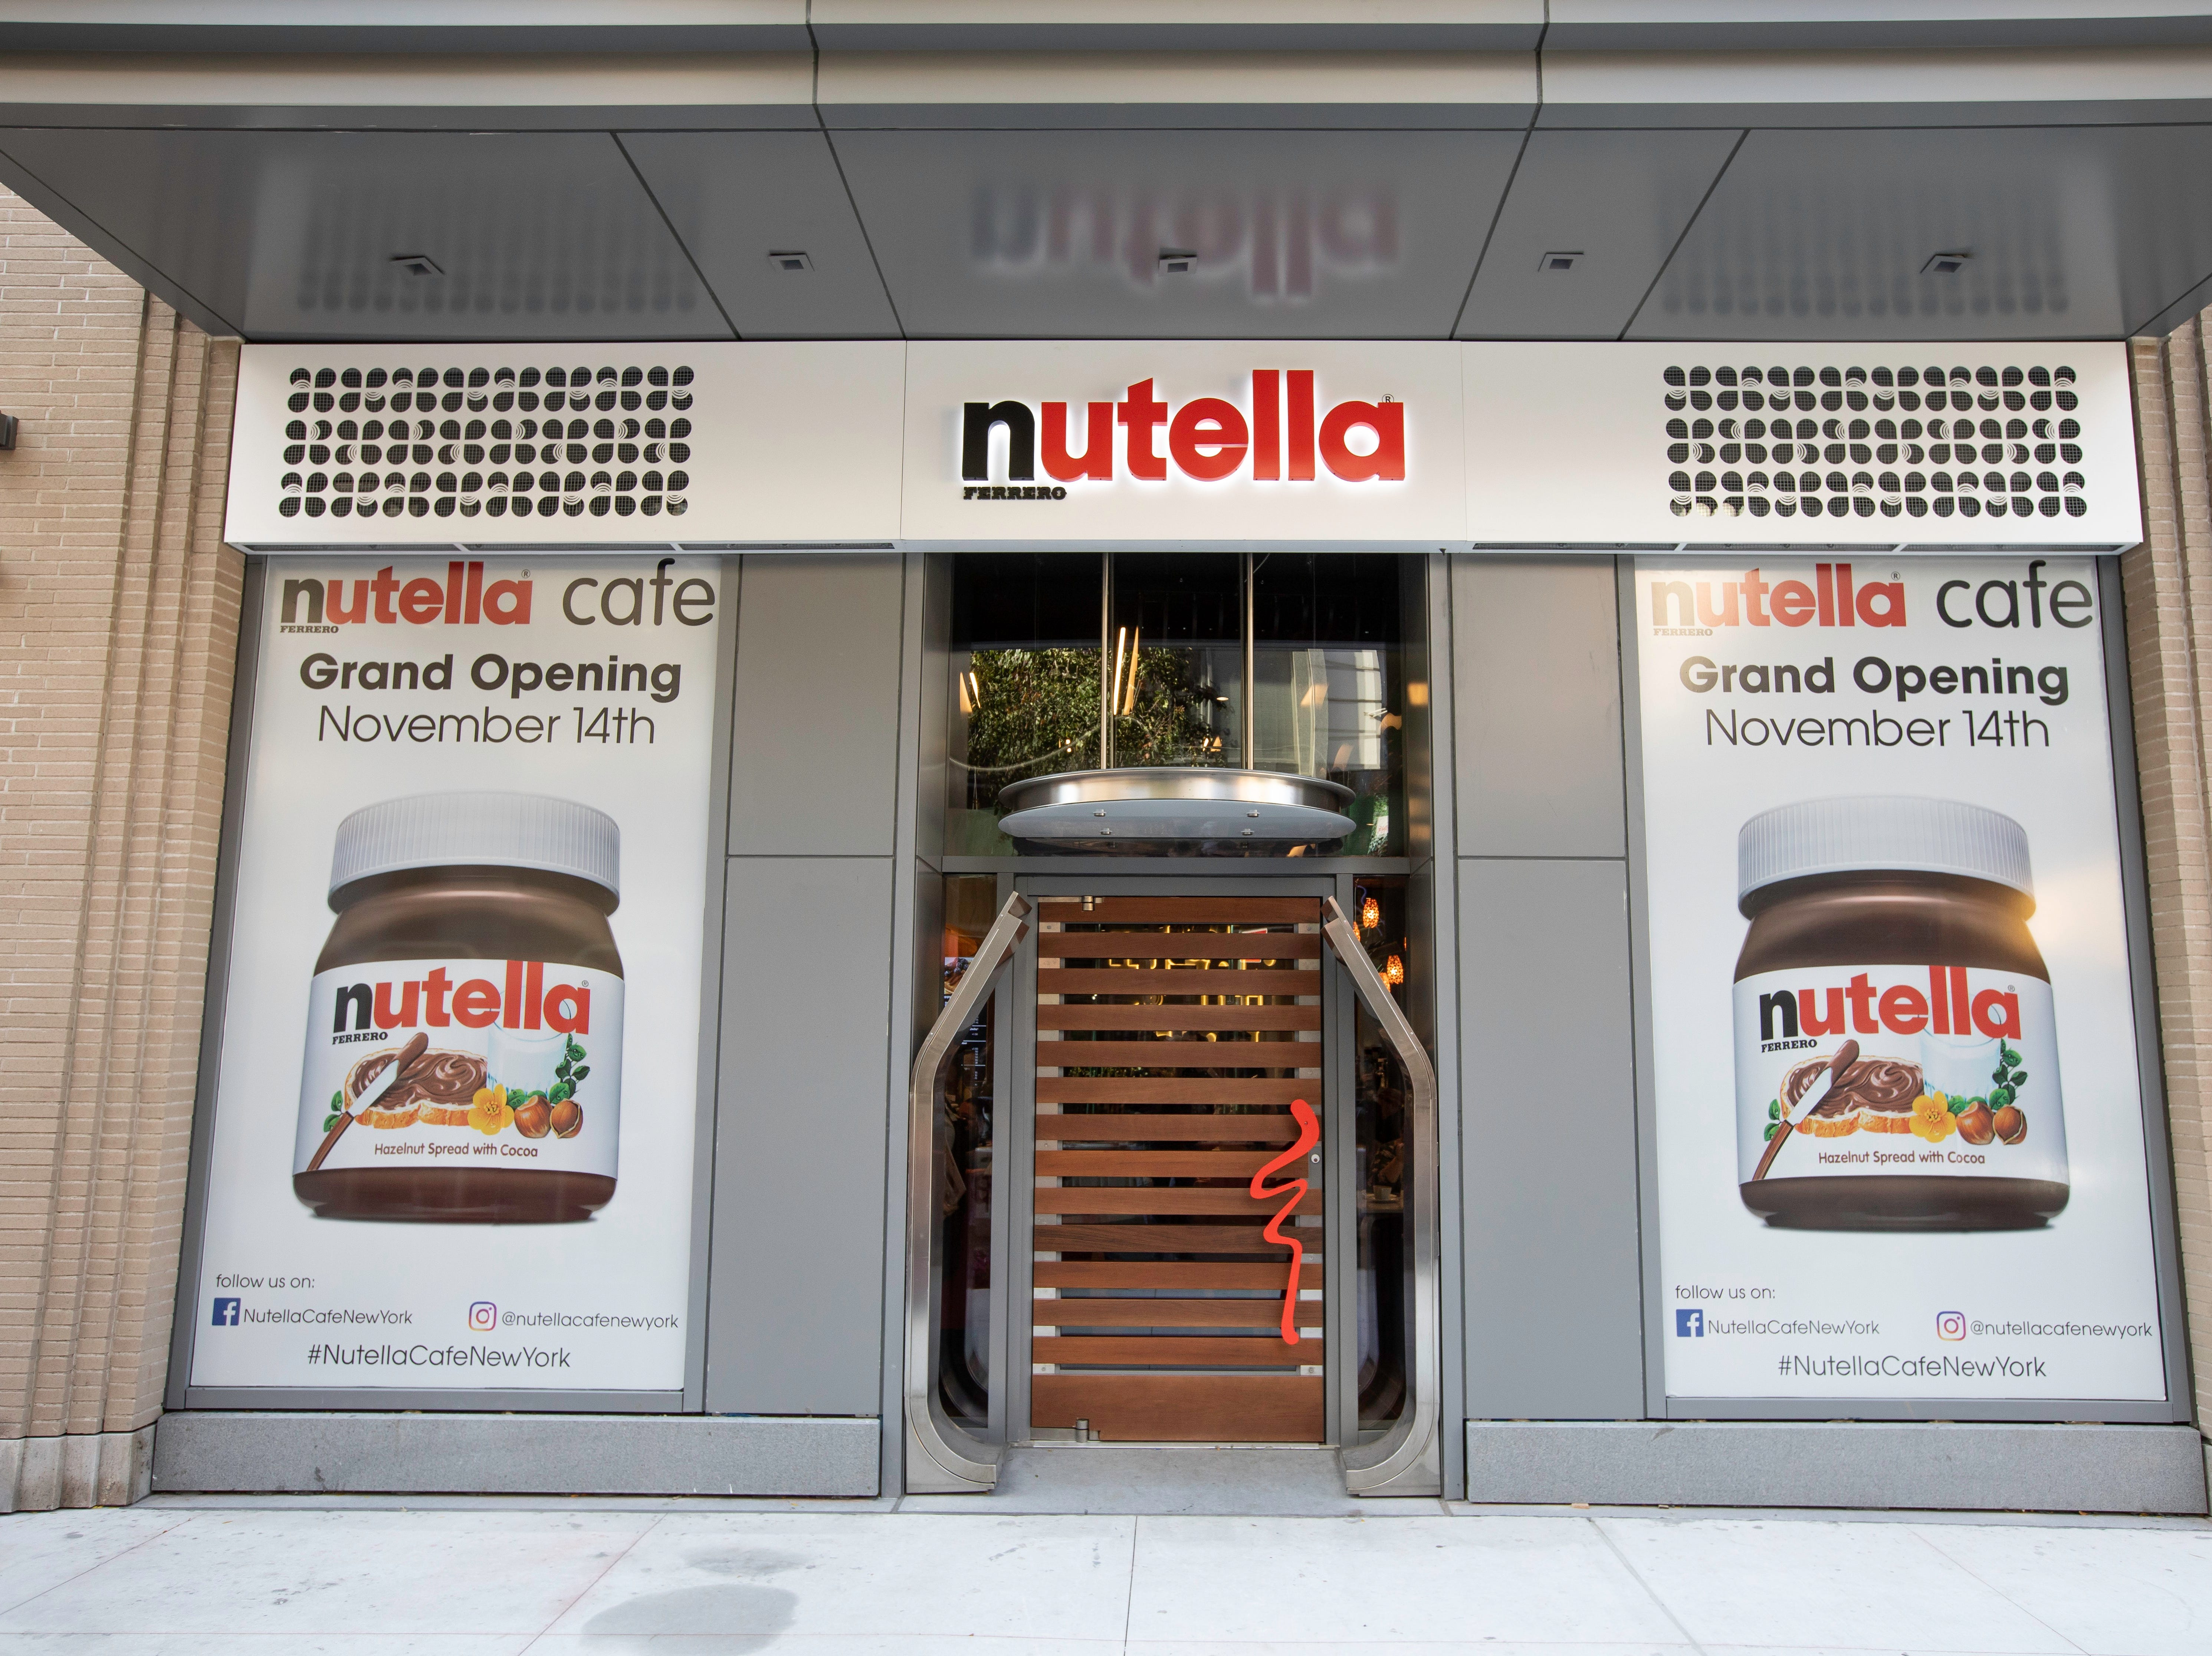 The nation's second Nutella Cafe opened Nov. 14 near Union Square in Manhattan. The first opened in Chicago last year.